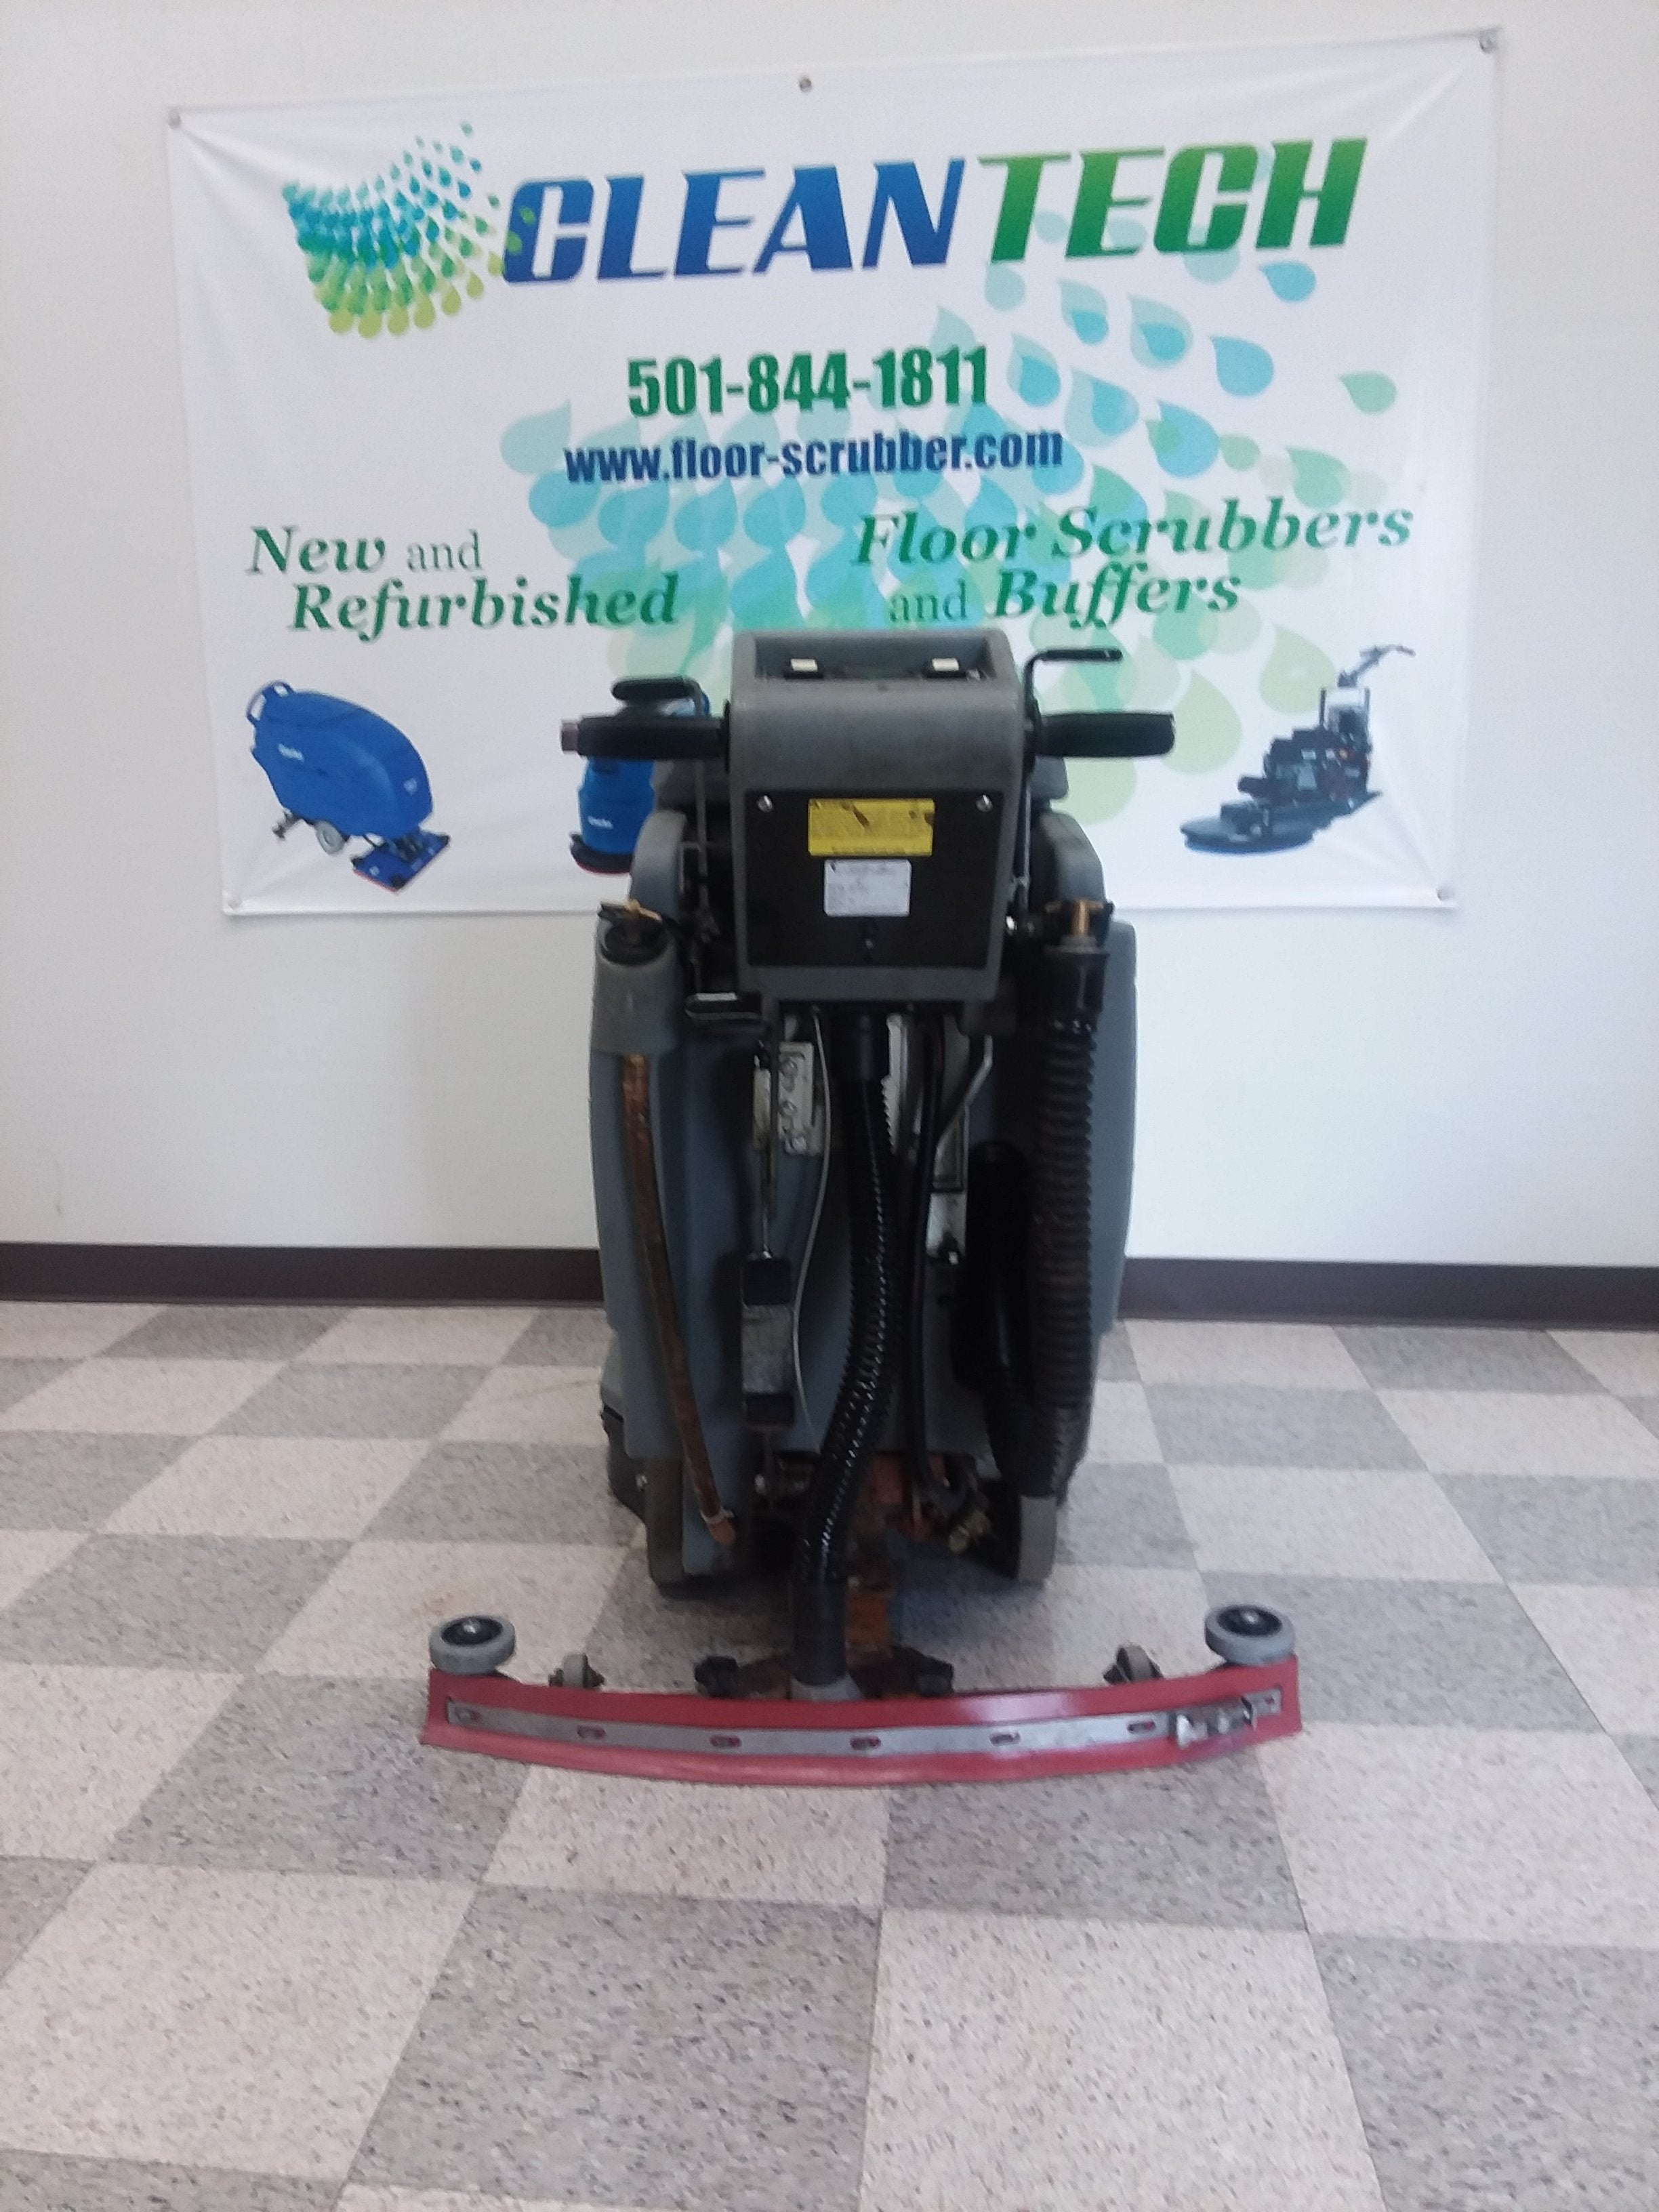 Battery Charger For A Noble Tennat Sppedscrub 2001 Floor Scrubber